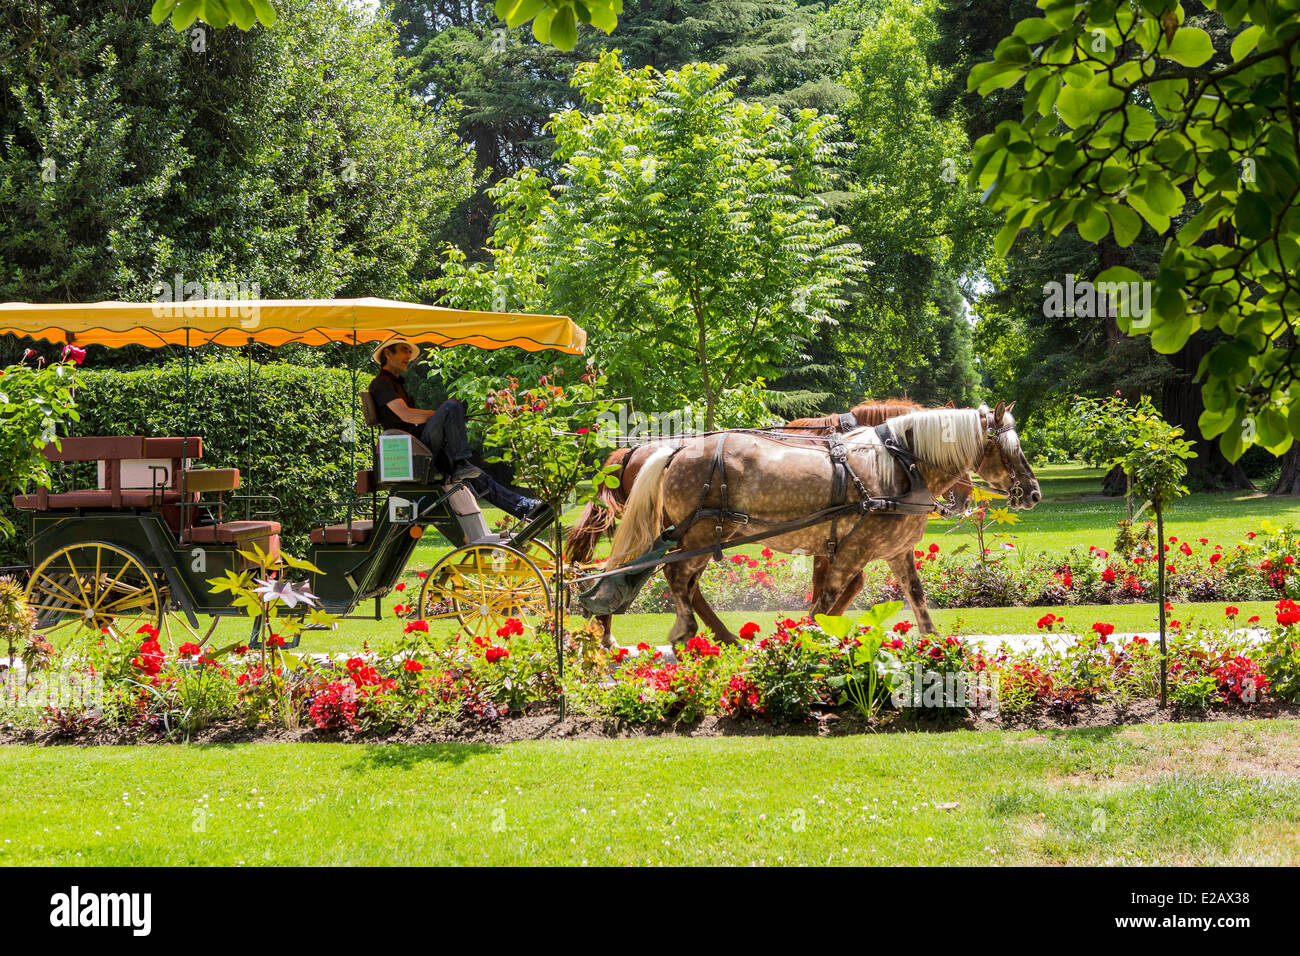 France, Hautes Pyrenees, Tarbes, walk in carriage in Massey Garden - Stock Image